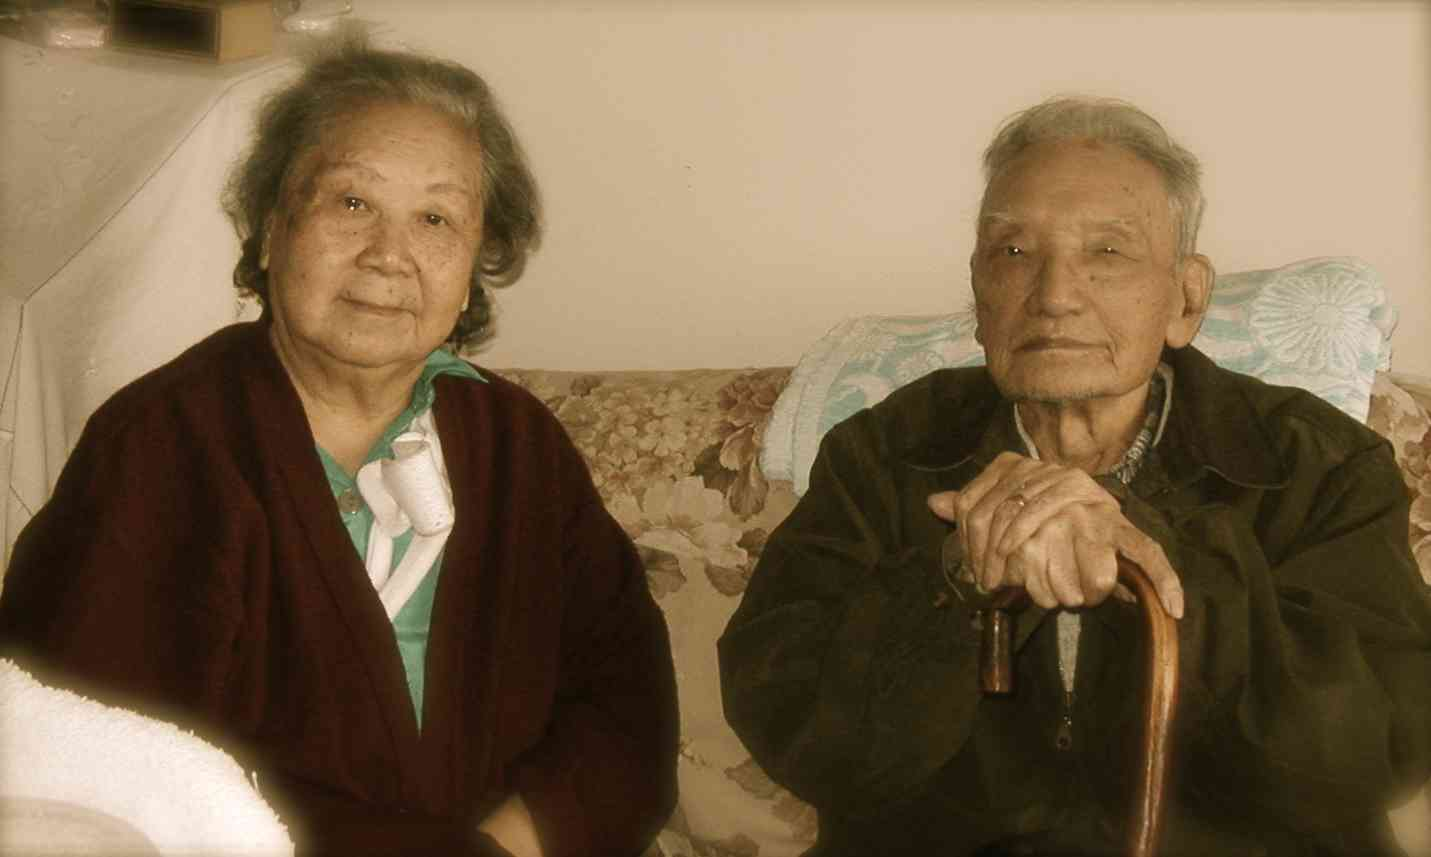 Hsi Ling Wu & Ruoh Ying Wu, taken at the Wah Luck House 2005. Credit: Easten Law